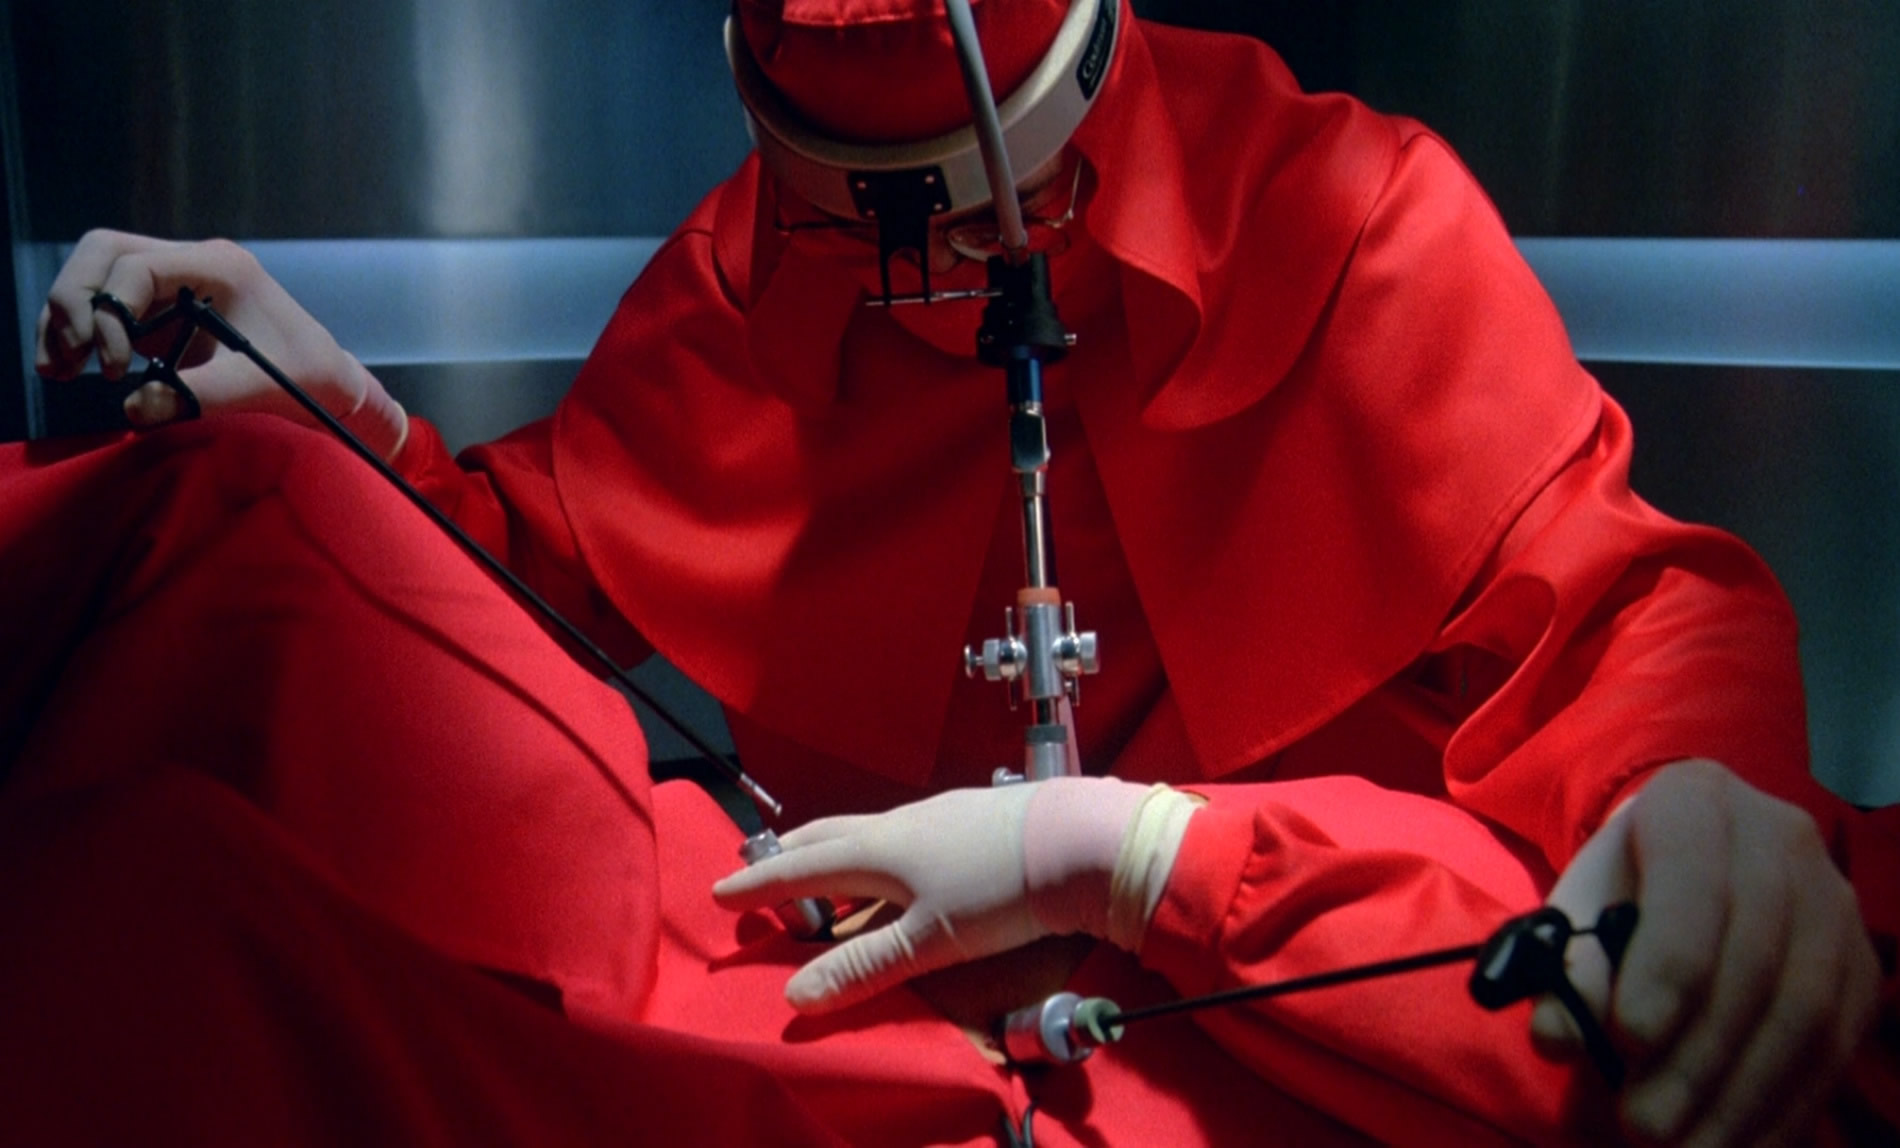 dead ringers red scrubs david cronenberg body horror cinema